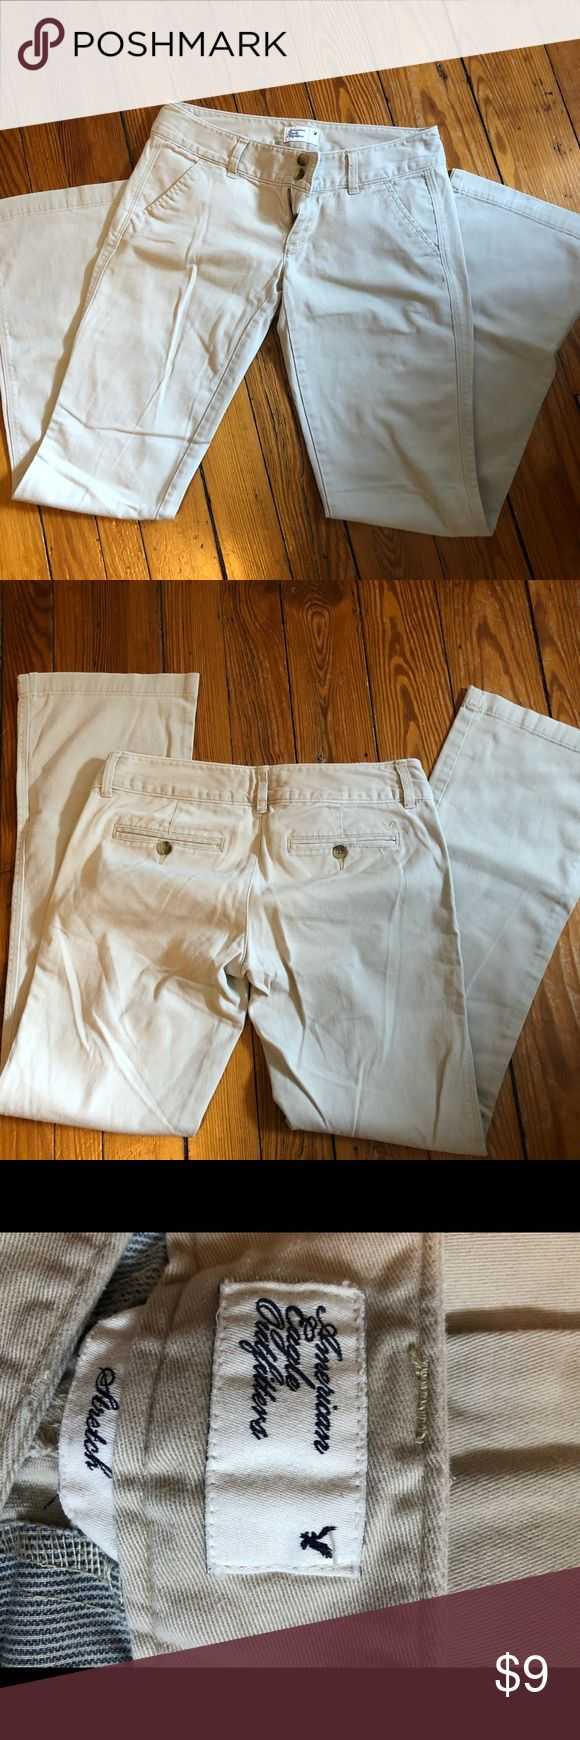 American Eagle Tan Pants Light tan bootcut khaki pants by American Eagle.  Size 4.  98% cotton 2% spandex, really soft brushed fabric.  AE knows how to make your tush look good! American Eagle Outfitters Pants Boot Cut & Flare